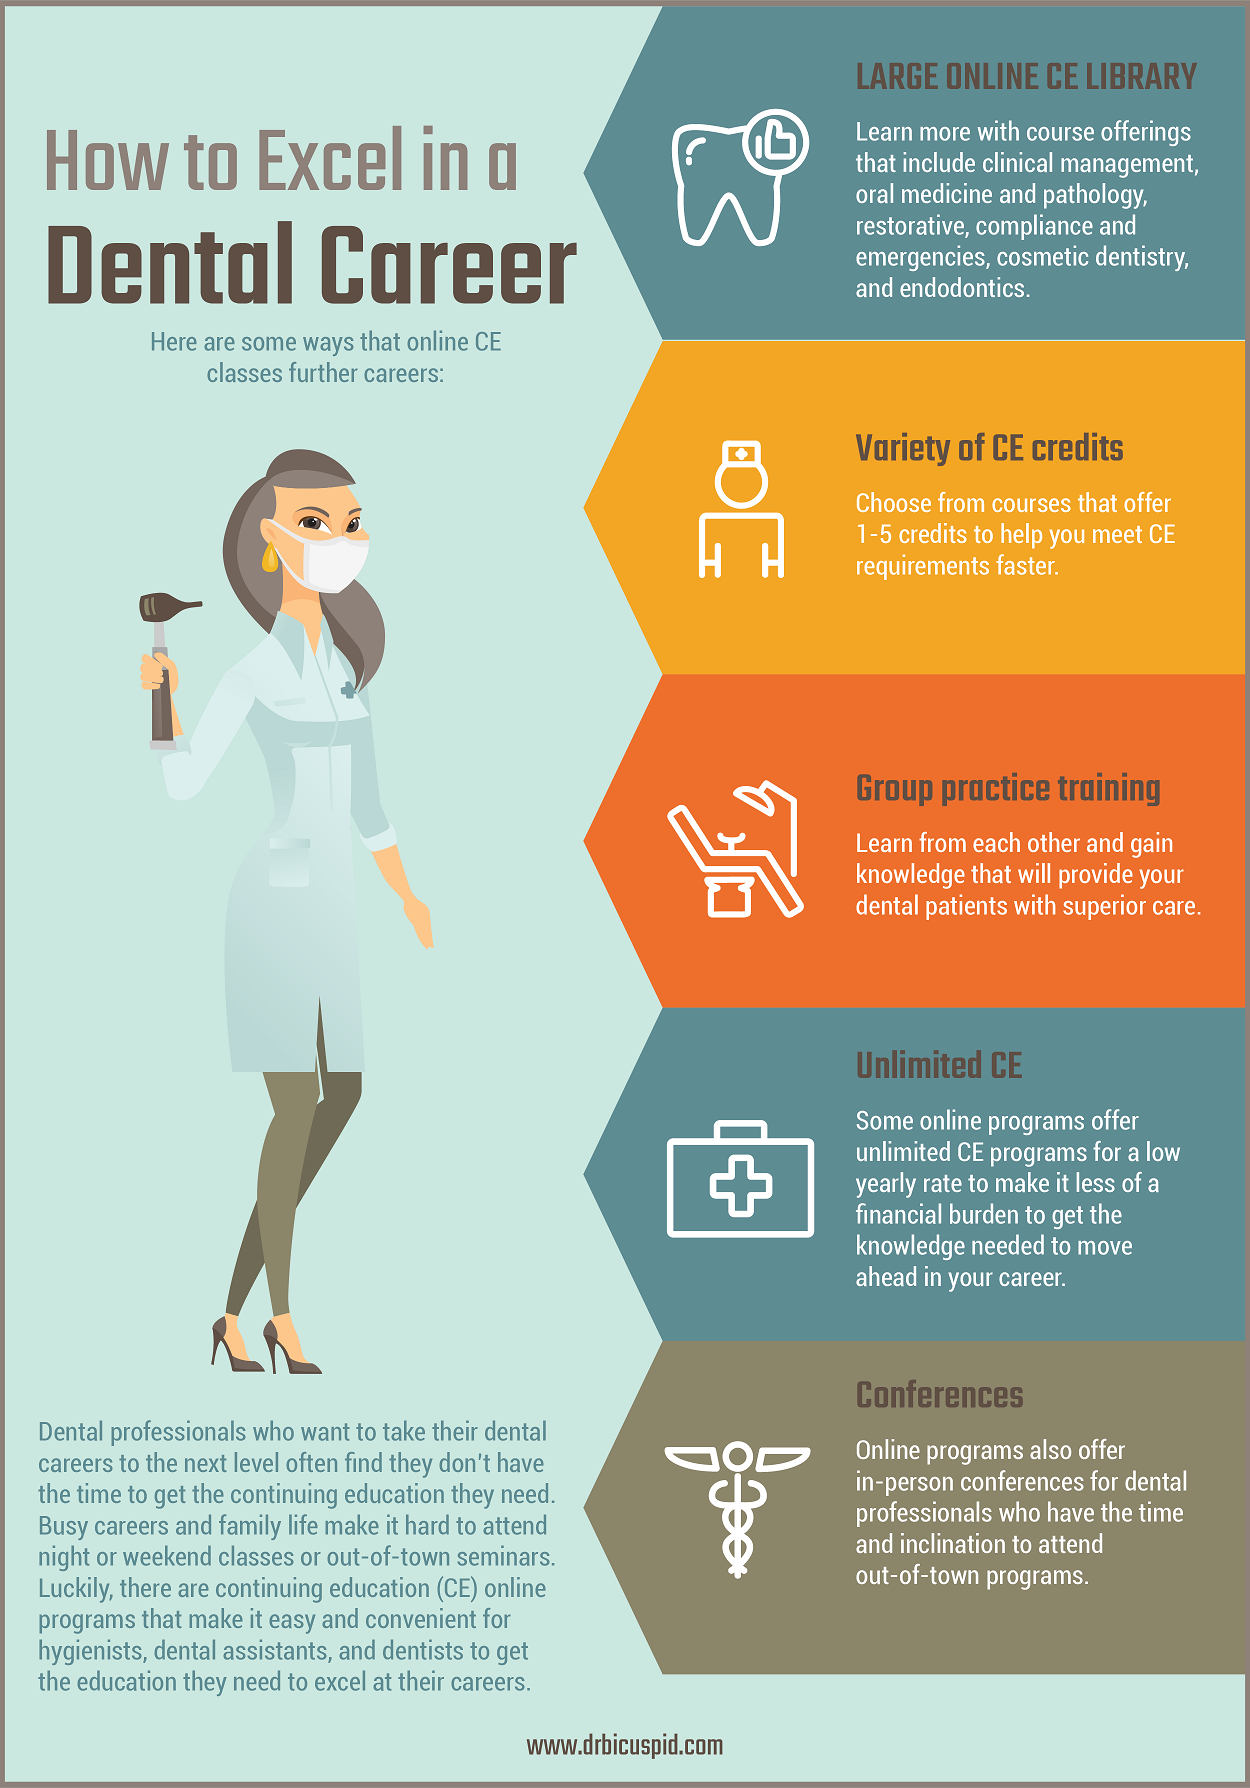 How to Excel in a Dental Career